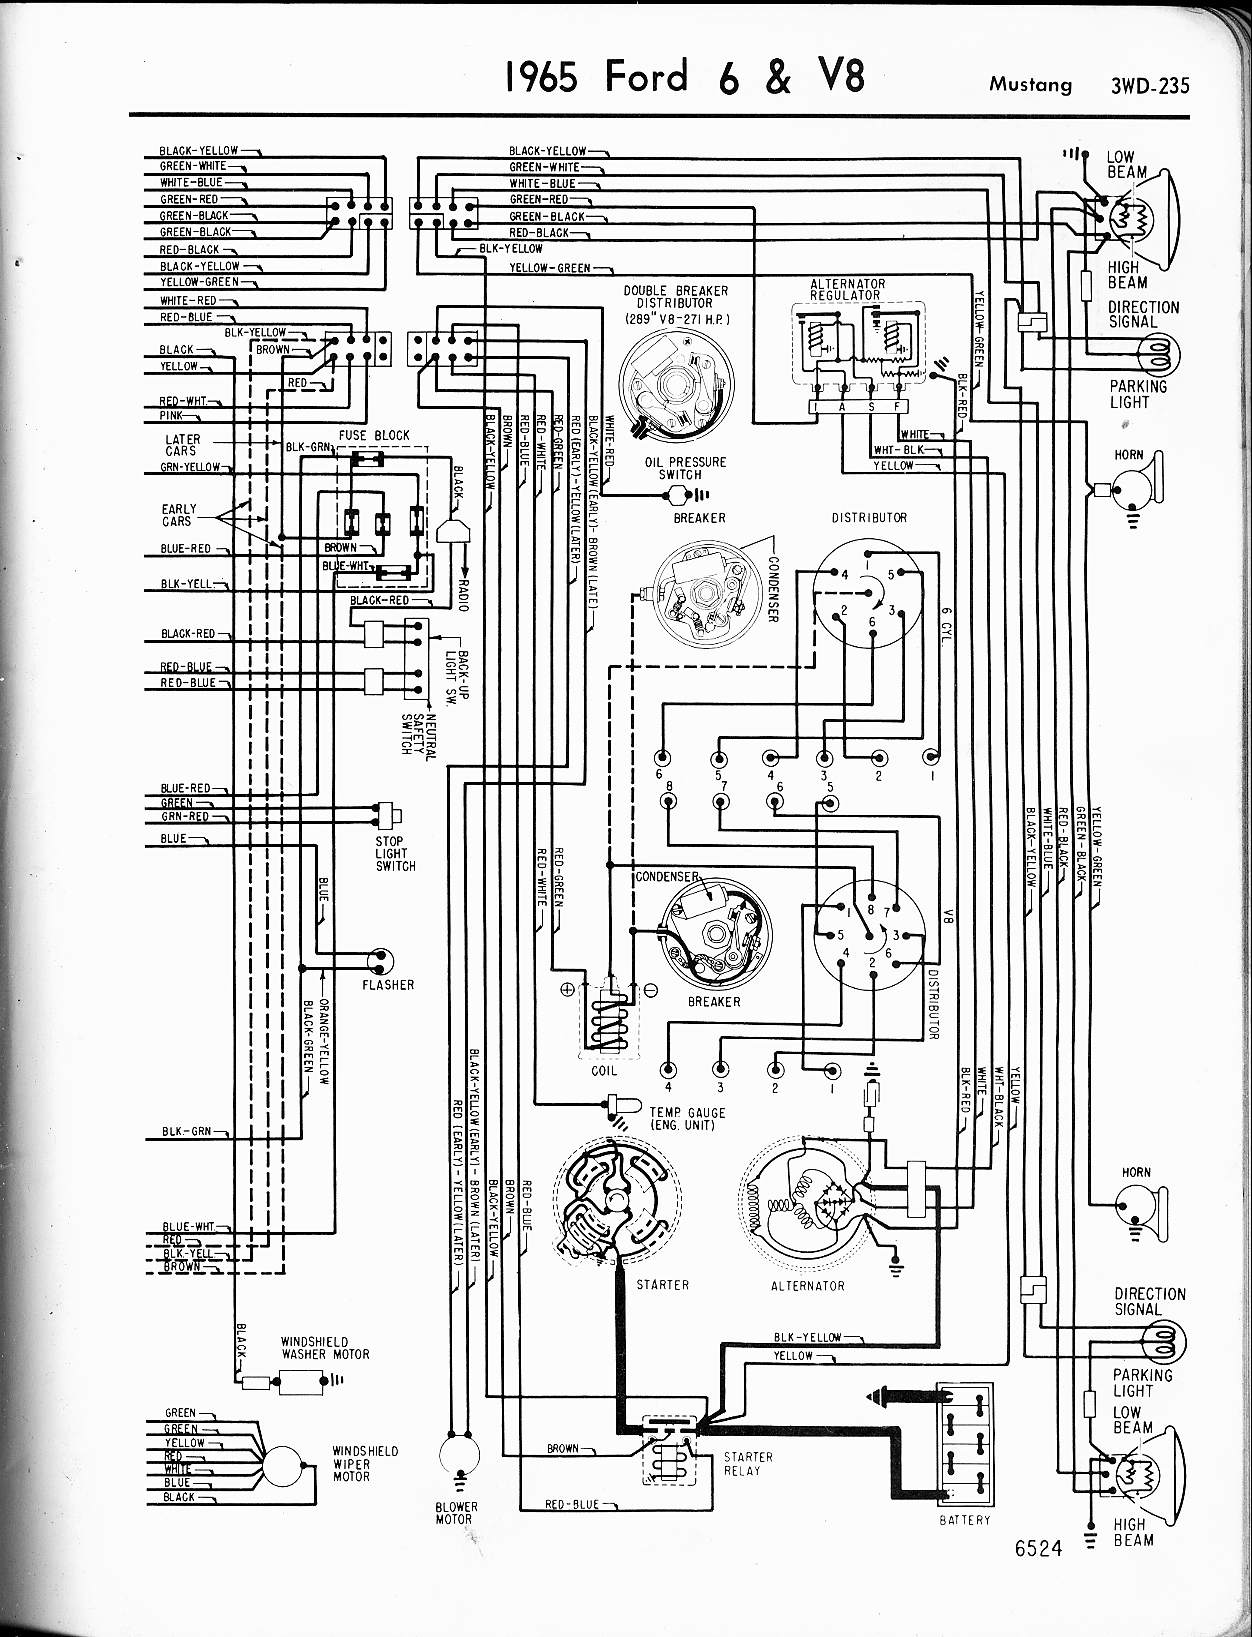 hight resolution of 65 mustang wire diagram wiring diagram pass painless wiring diagram 65 mustang 65 ford wiring diagram